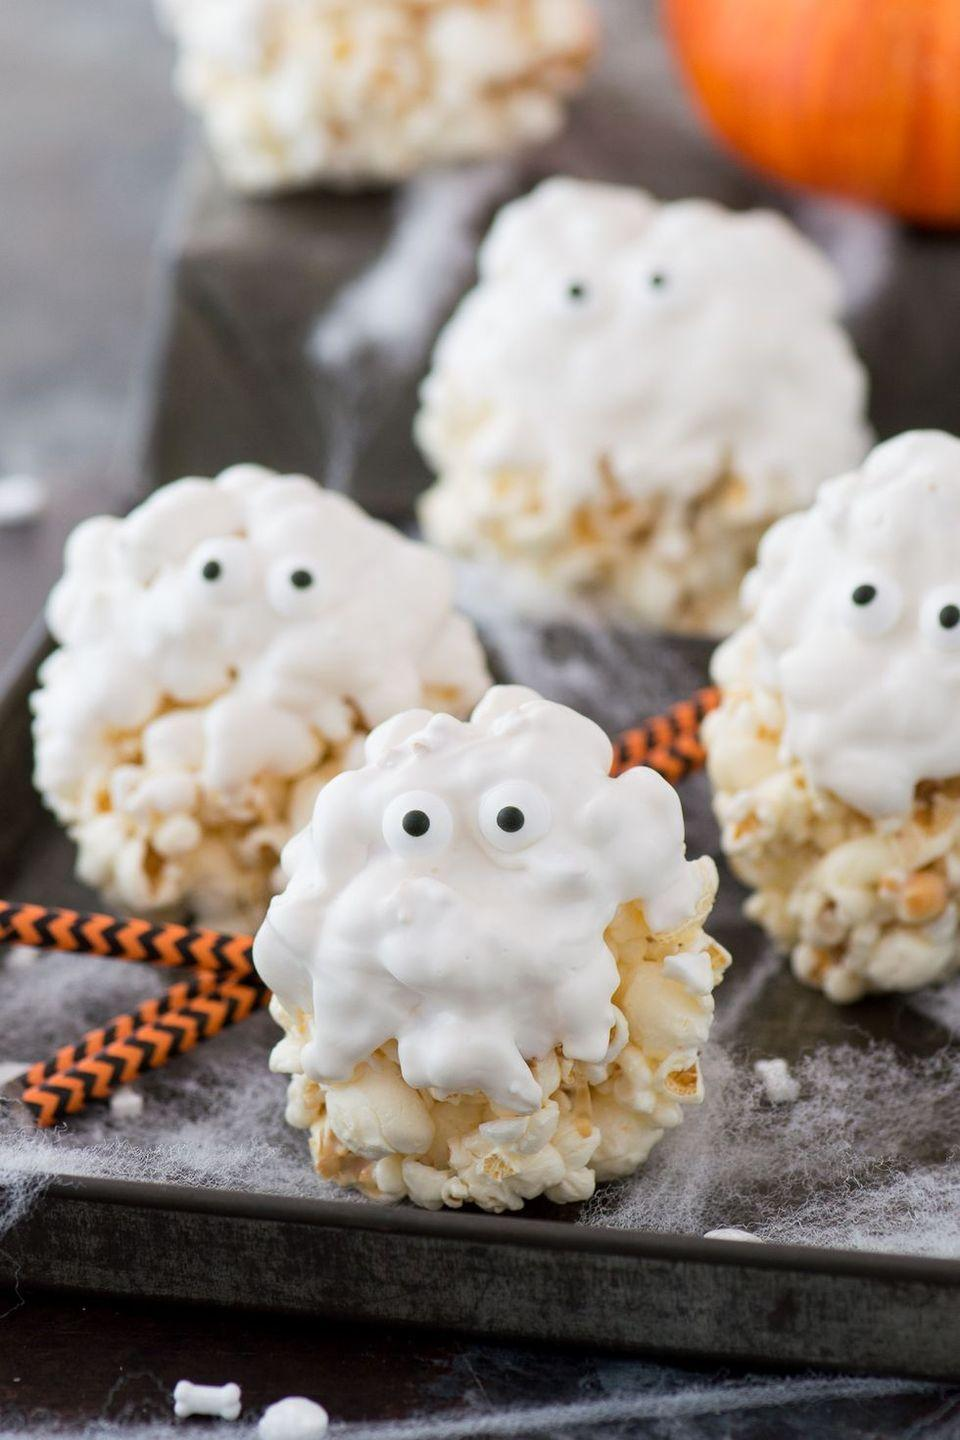 """<p>Got white candy melts, some popcorn, and marshmallows? Then you're halfway to this hilarious-looking dessert, which will delight kids and grownups alike.</p><p><strong>Get the recipe at <a href=""""https://thefirstyearblog.com/ghost-popcorn-balls/"""" rel=""""nofollow noopener"""" target=""""_blank"""" data-ylk=""""slk:The First Year"""" class=""""link rapid-noclick-resp"""">The First Year</a>.</strong></p><p><strong><a class=""""link rapid-noclick-resp"""" href=""""https://go.redirectingat.com?id=74968X1596630&url=https%3A%2F%2Fwww.walmart.com%2Fip%2FThe-Pioneer-Woman-Spring-10-Piece-Baking-Prep-Set-Teal%2F269954471&sref=https%3A%2F%2Fwww.thepioneerwoman.com%2Ffood-cooking%2Fmeals-menus%2Fg32110899%2Fbest-halloween-desserts%2F"""" rel=""""nofollow noopener"""" target=""""_blank"""" data-ylk=""""slk:SHOP BAKING TOOLS"""">SHOP BAKING TOOLS</a><br></strong></p>"""